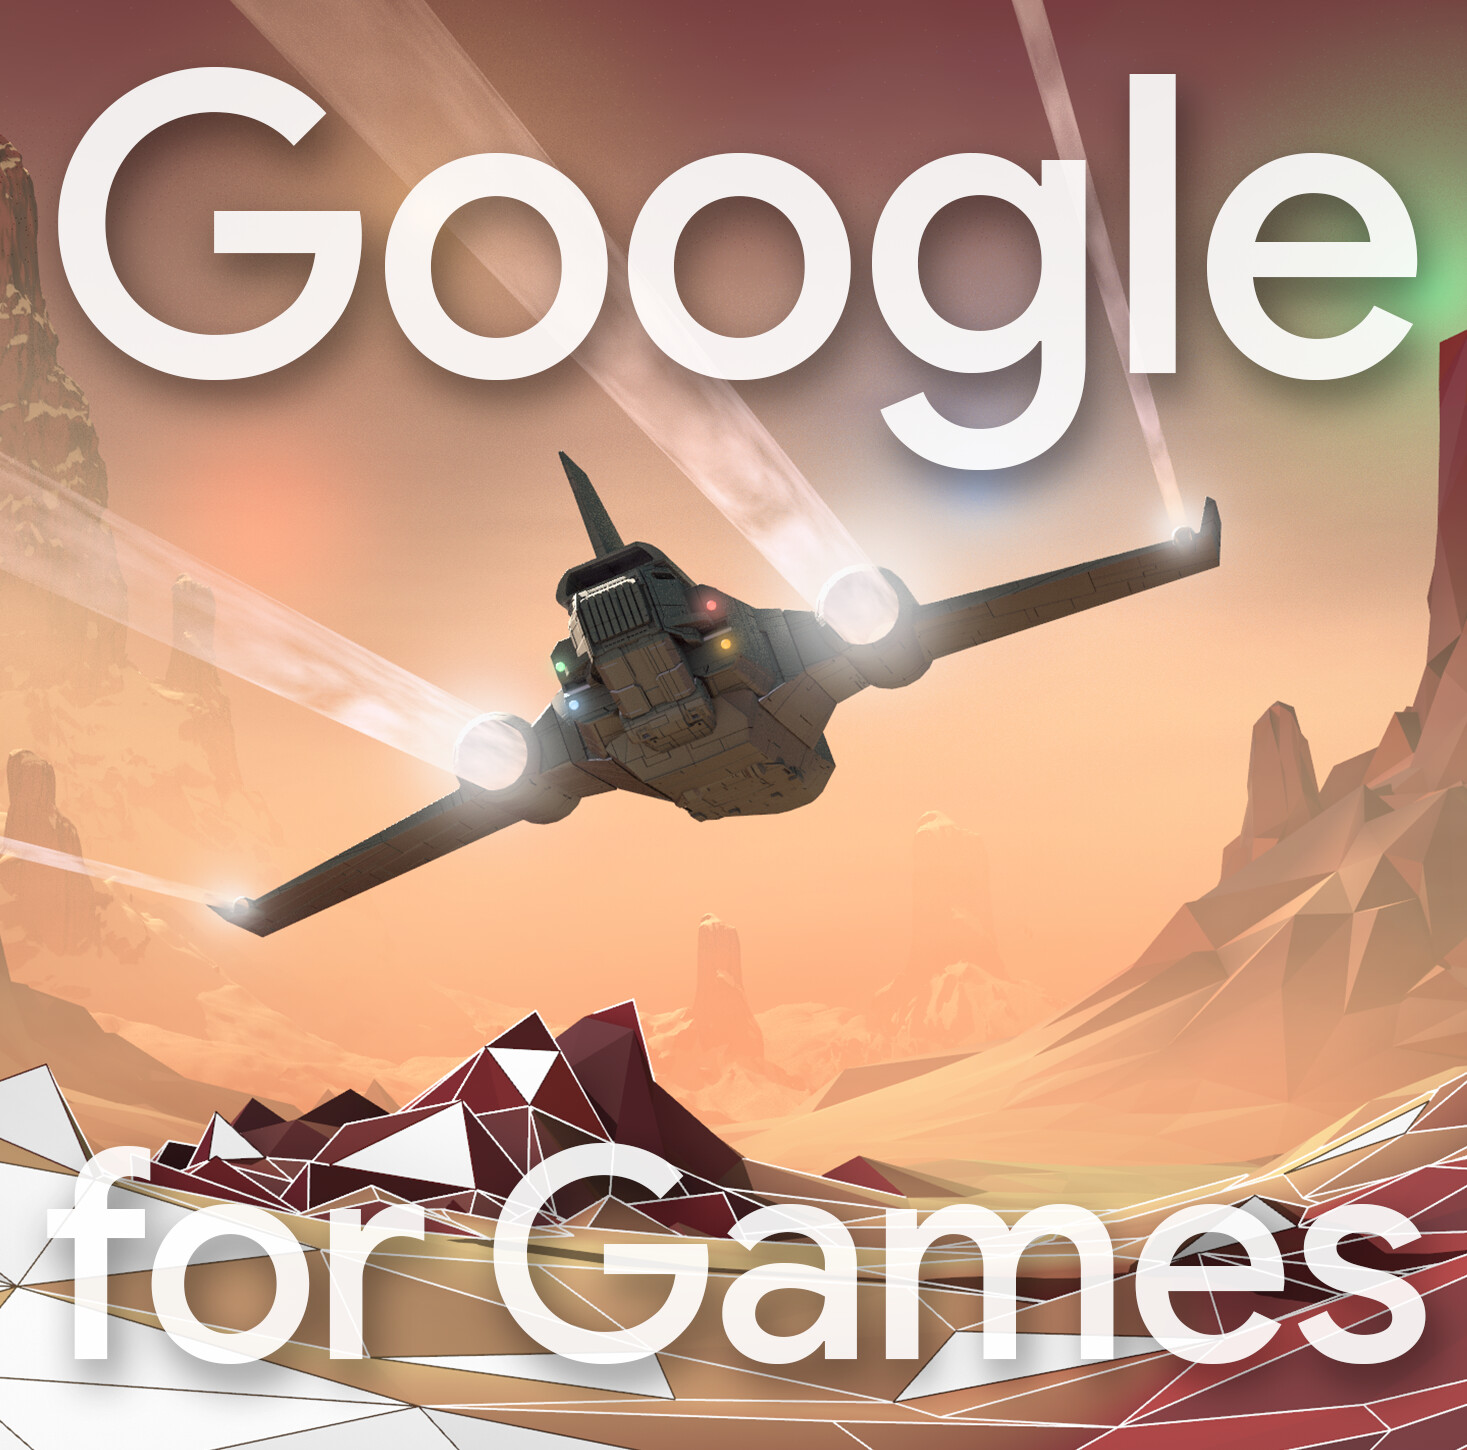 Google For Games re brand: illustrations